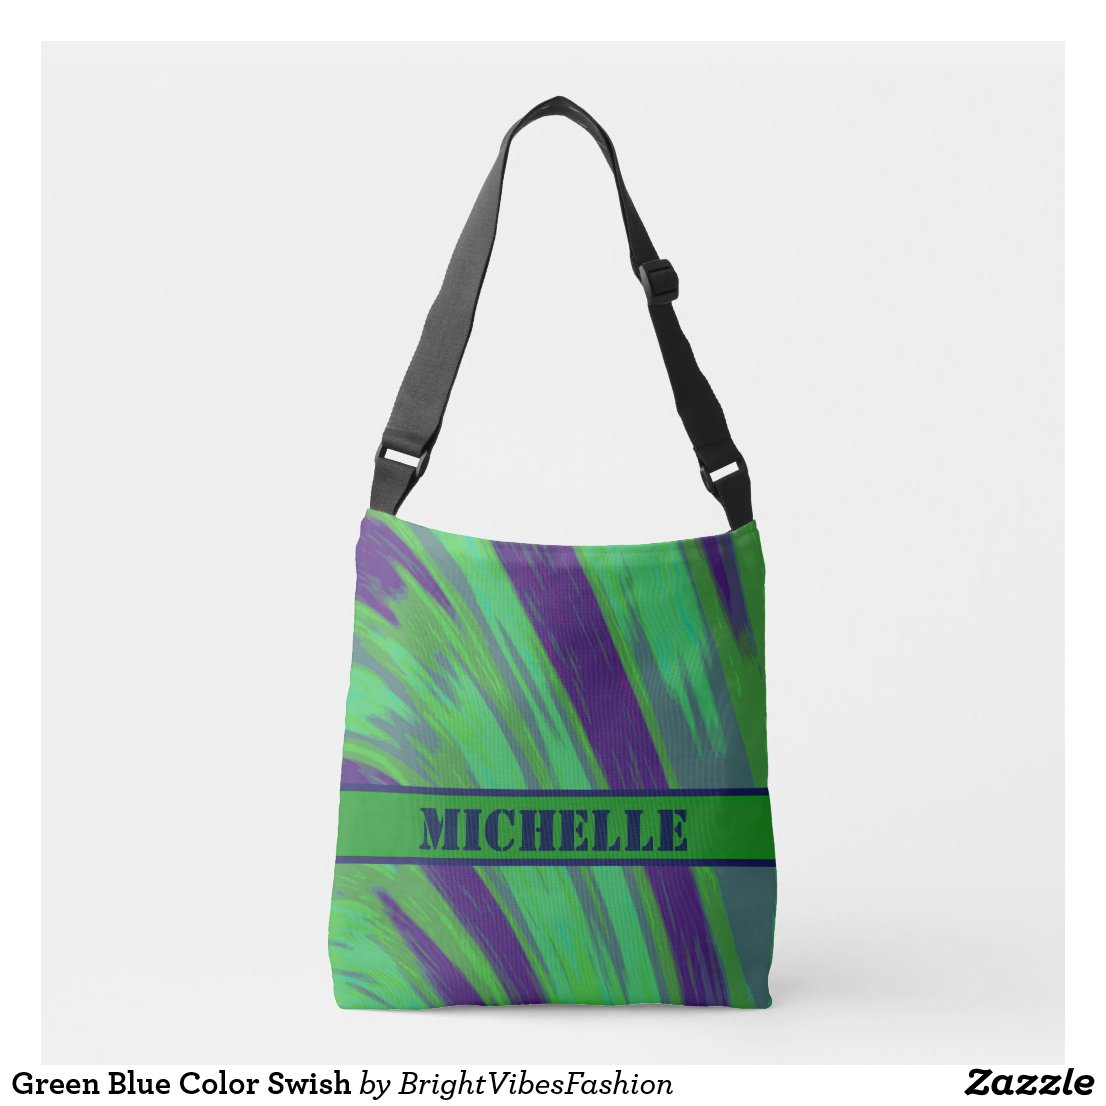 Green Blue Color Swish Crossbody Bag